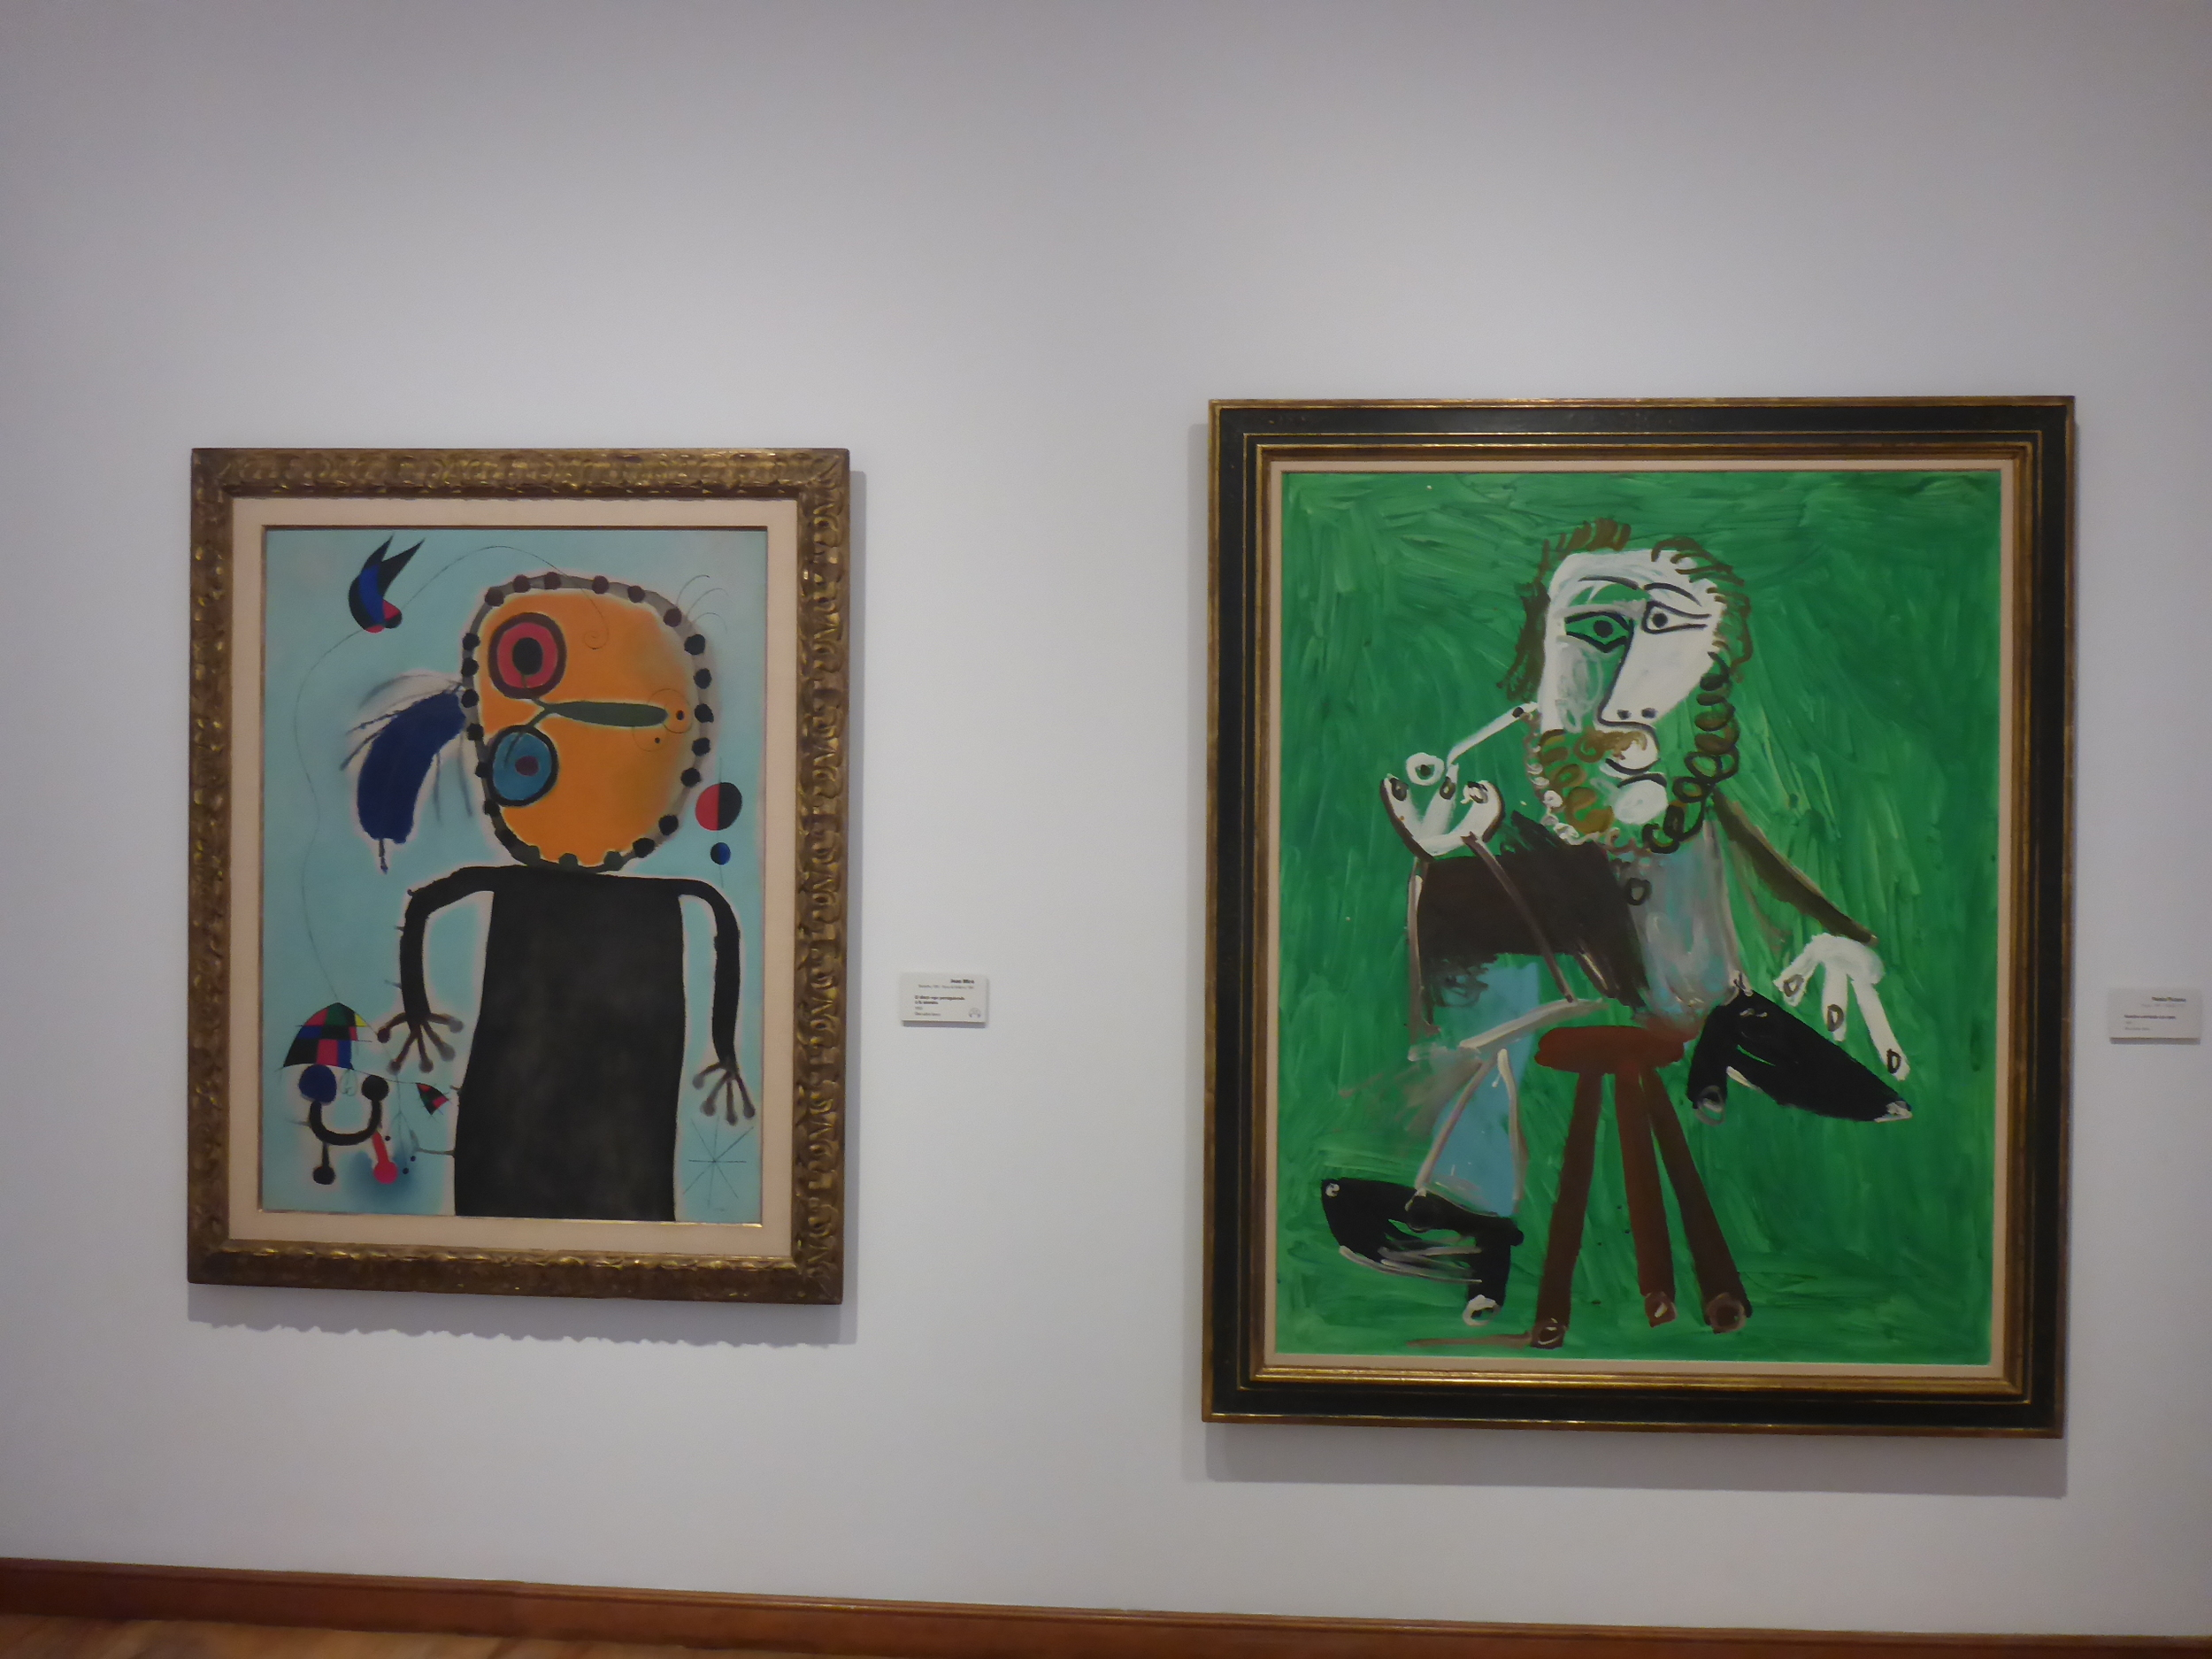 THE BOTERO GALLERY ALSO FEATURES MANY GREAT MASTERS. hERE is a miro beside a Picasso.